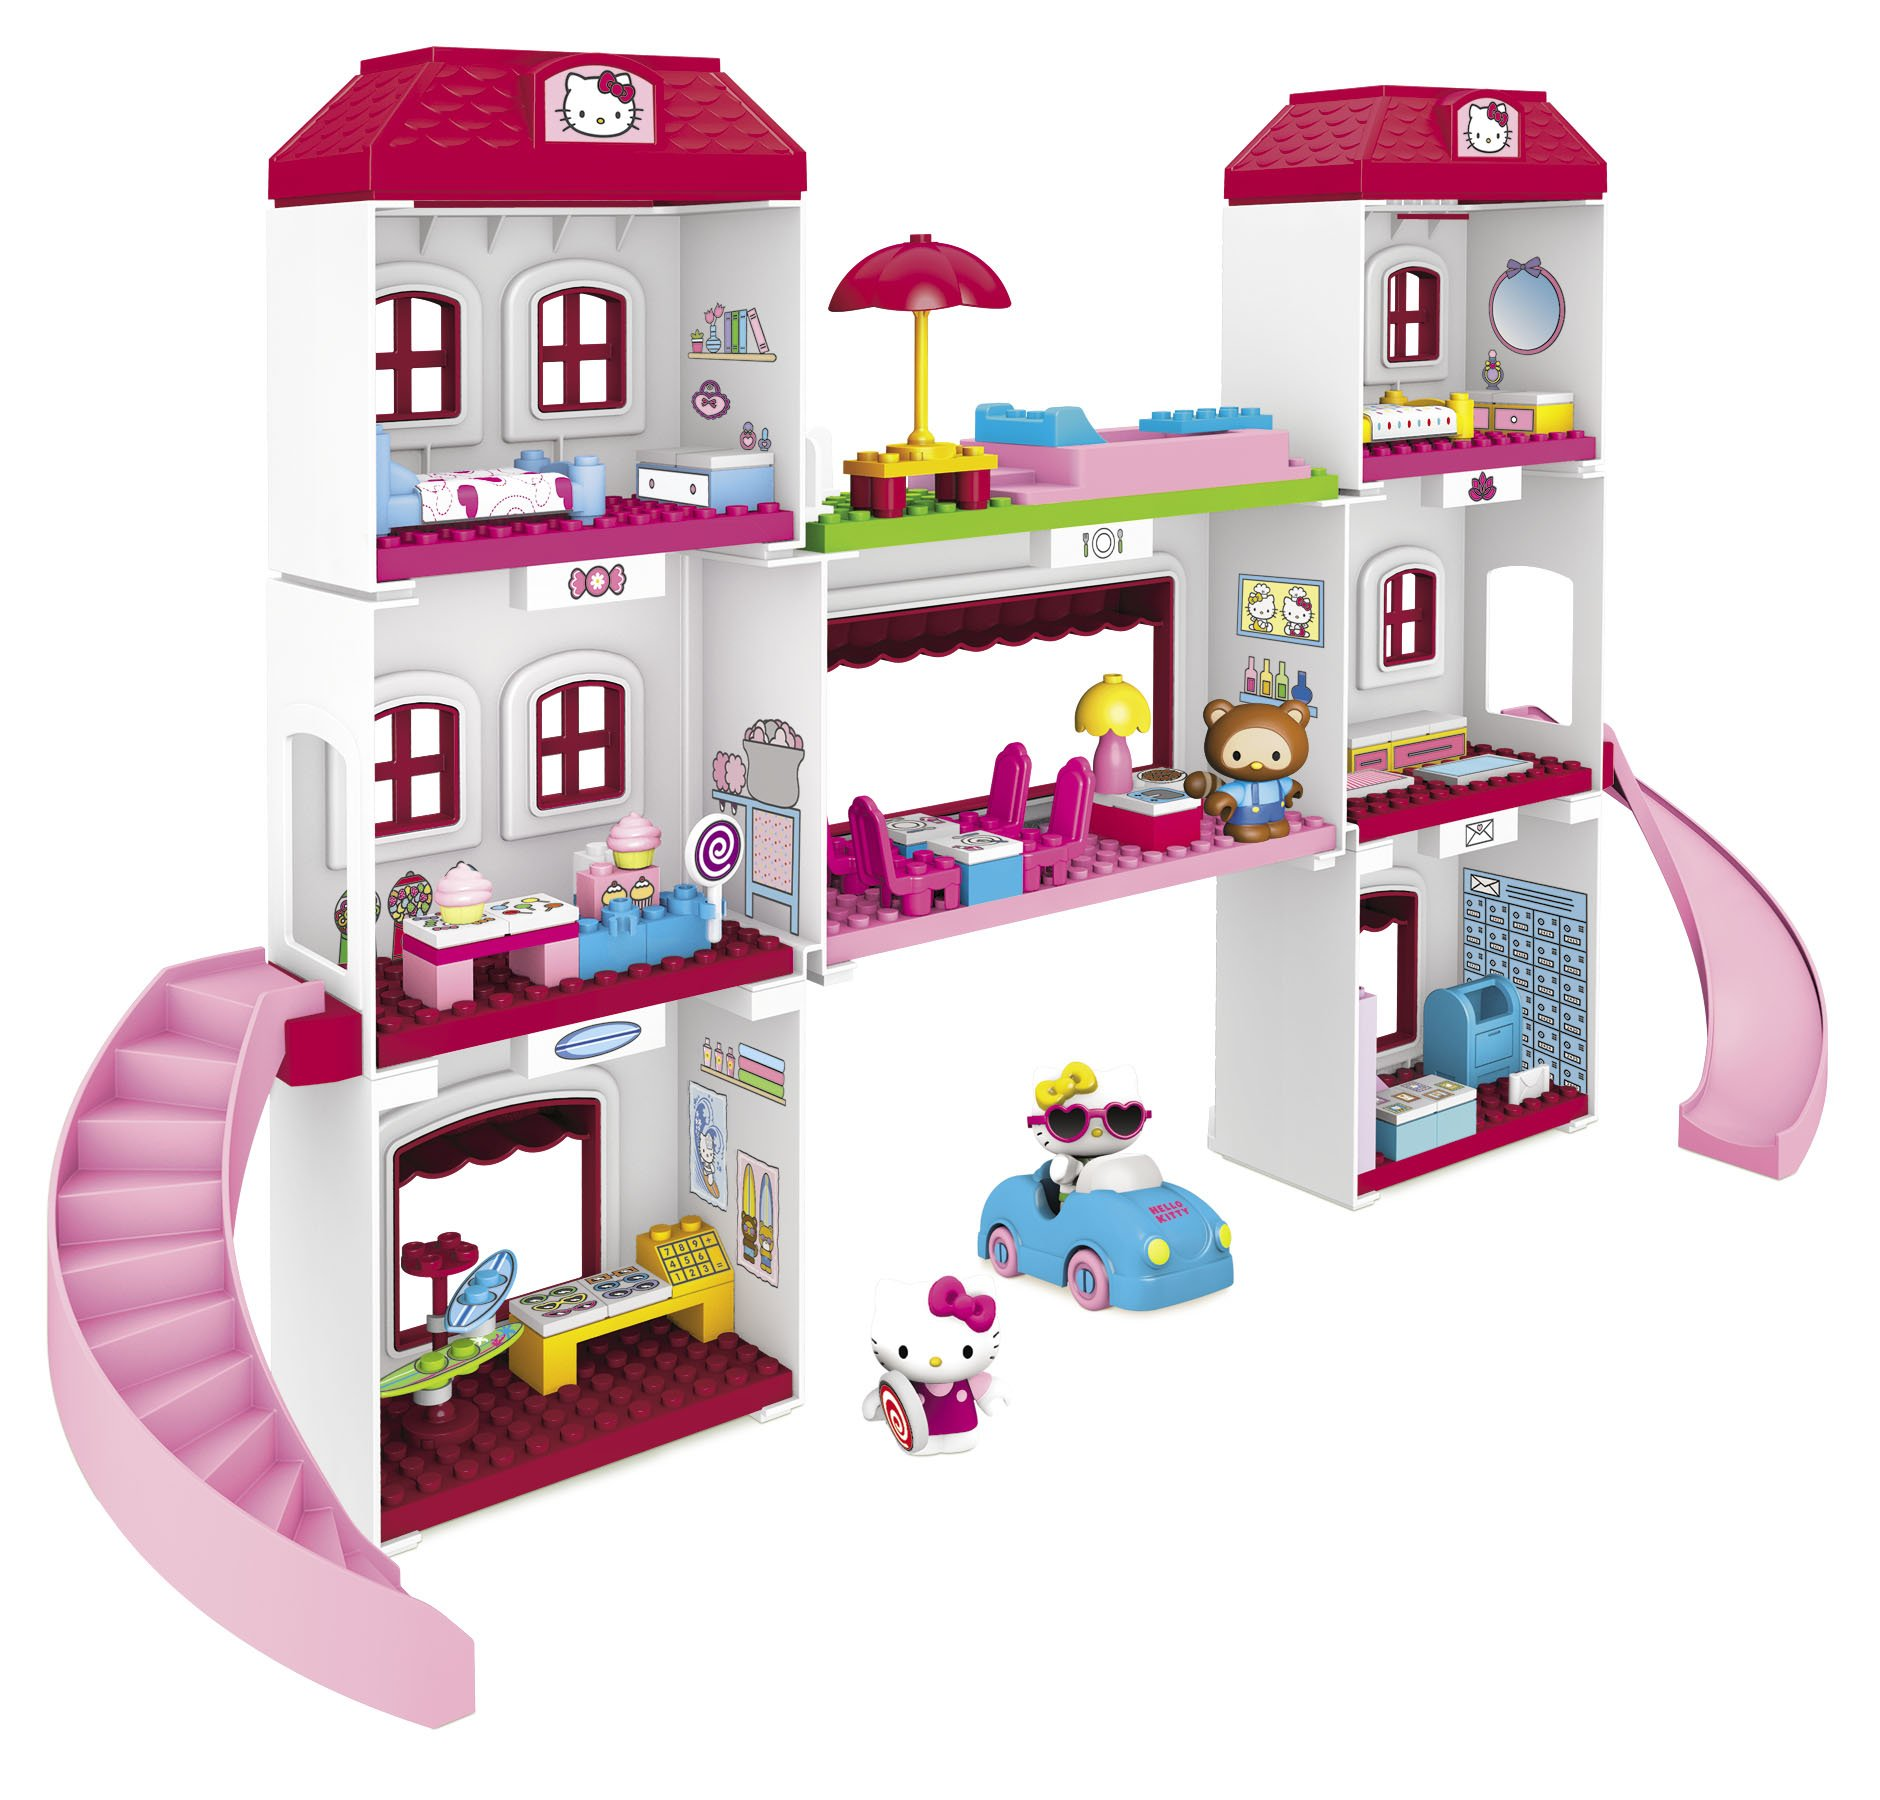 Hello Kitty Deluxe Vacation Village Home by Hello Kitty (Image #2)